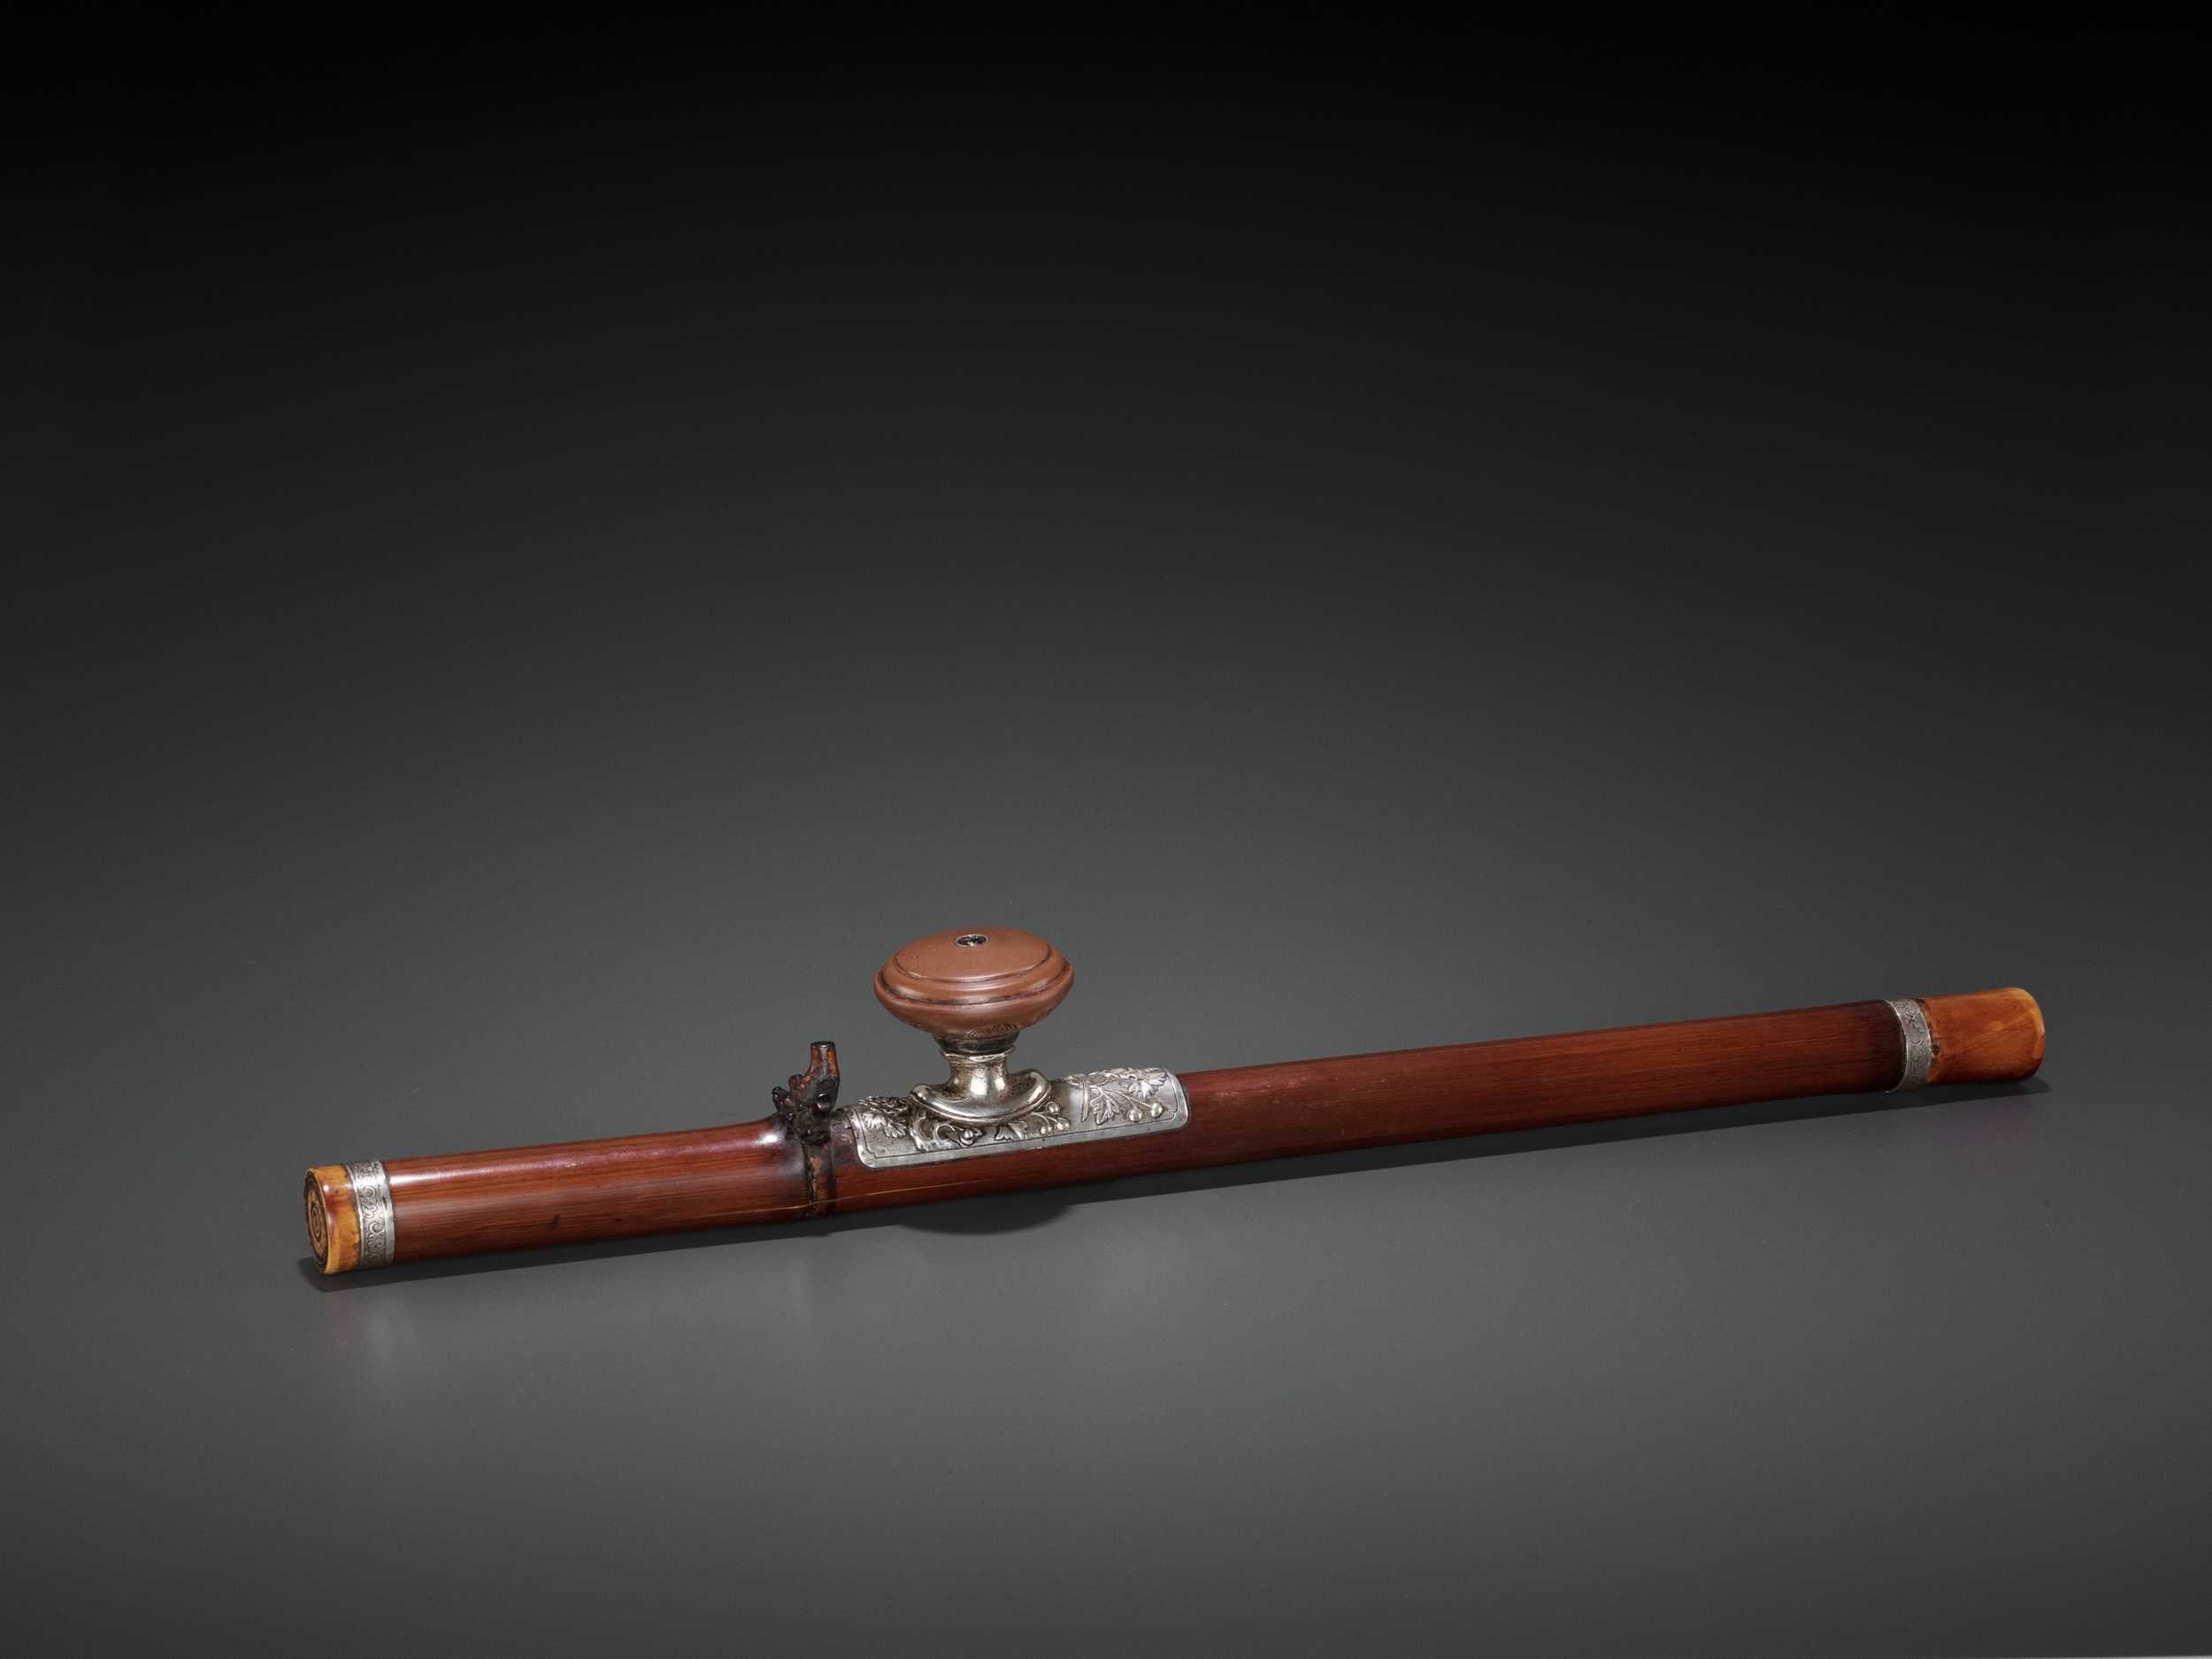 Lot 20 - A BAMBOO OPIUM PIPE WITH IVORY, SILVER AND YIXING CERAMIC FITTINGS, LATE QING TO REPUBLIC